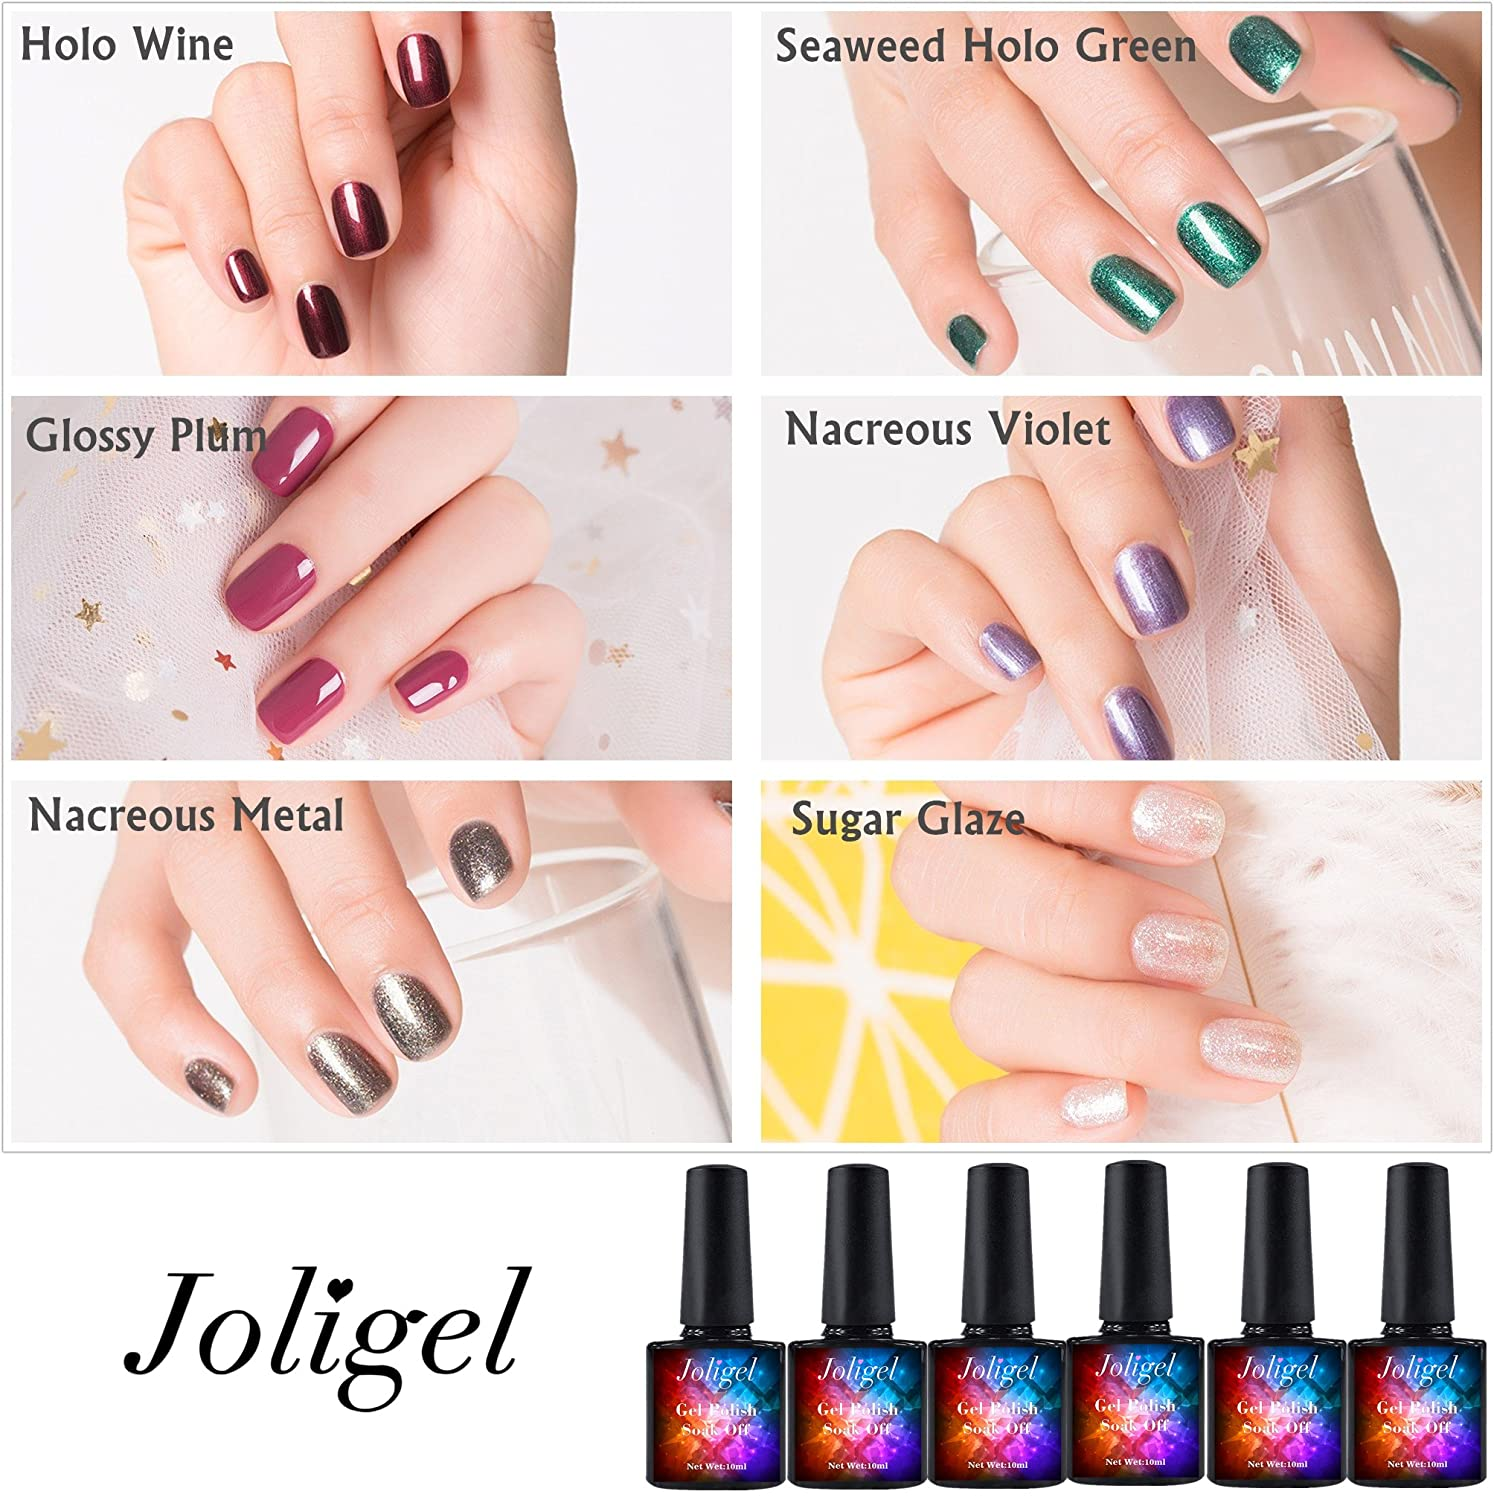 Joligel 6x Gel Nail Polish Holographic Glitter Set of 5 + Glossy Sugar Plum Female Pink, Semi Permanent Shellac UV LED for Professional Manicure Nail Art Design, Burgundy holo red + Seaweed holo green + Glossy plum + Pearly violet + Nacreous metal + Sugar